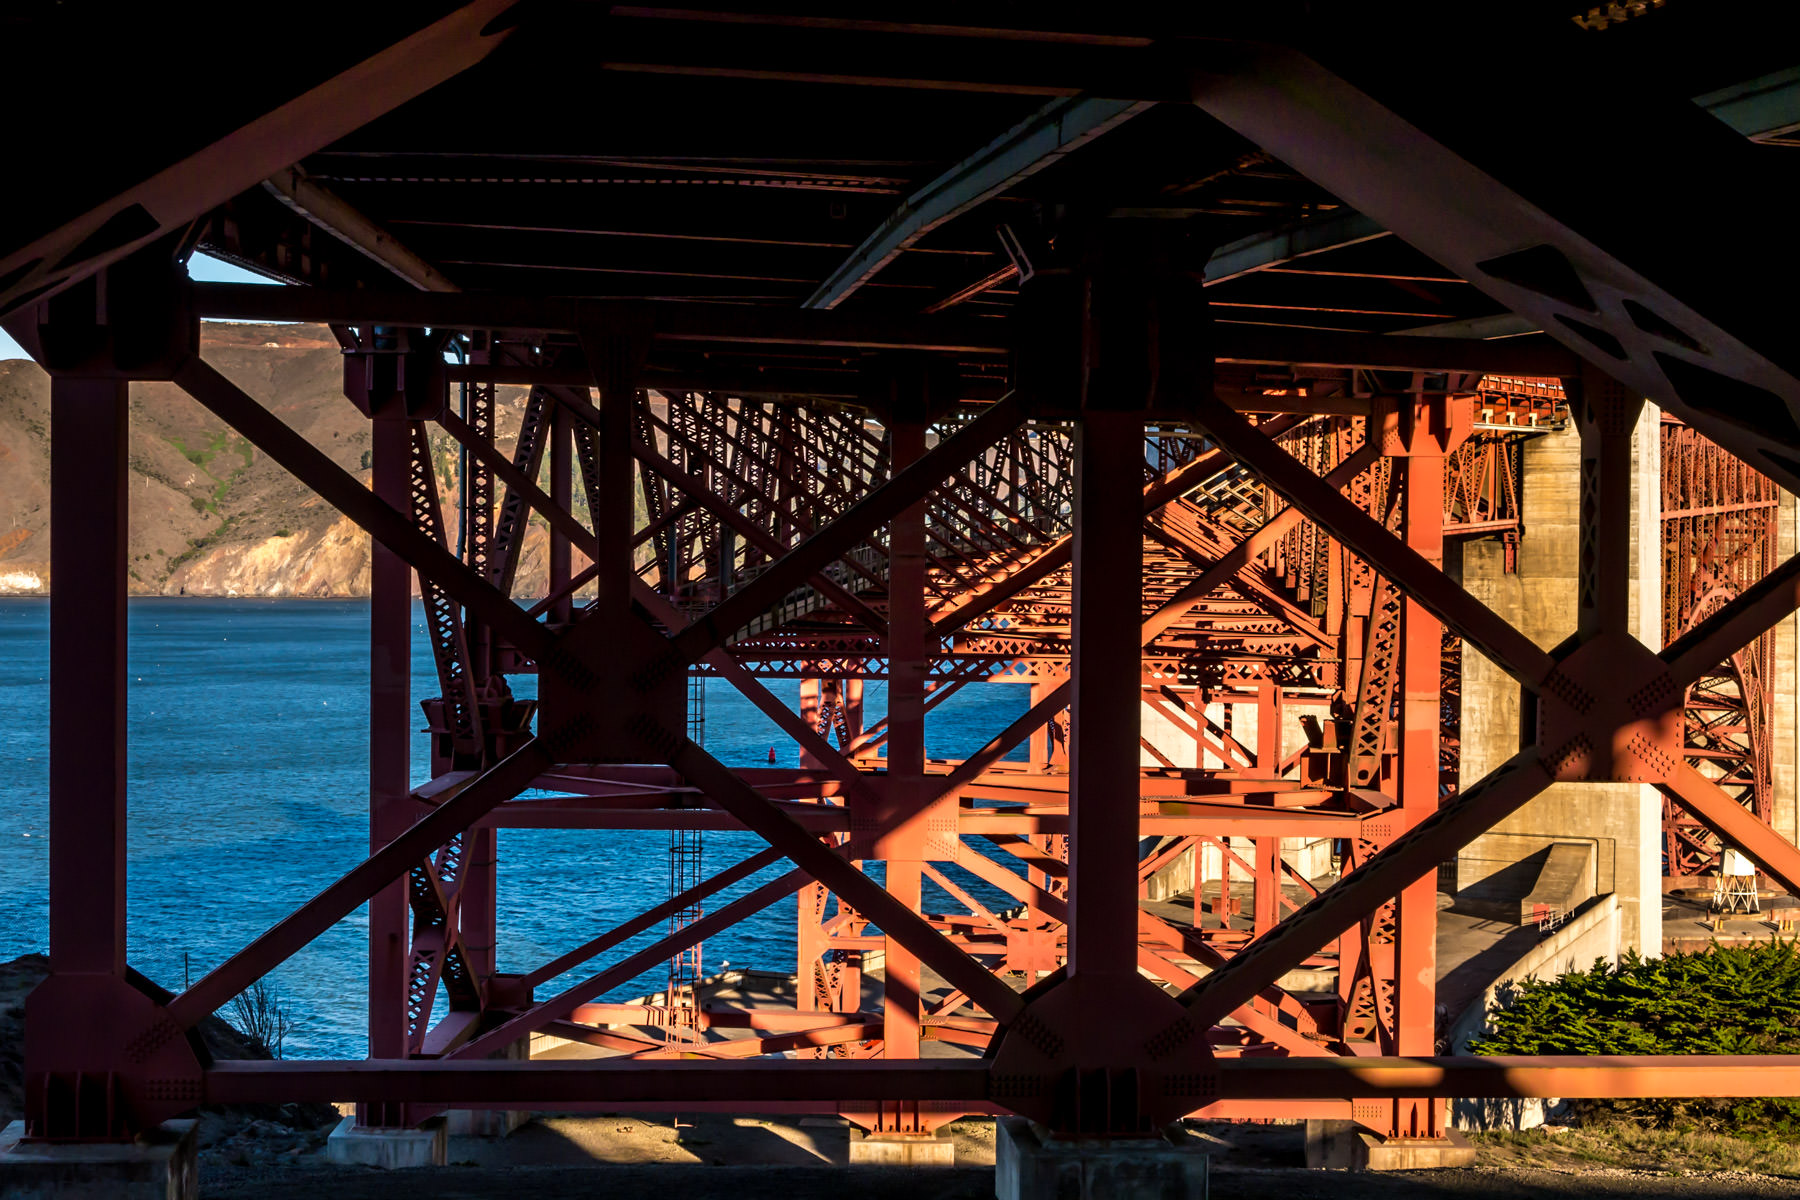 Detail of the support structure of San Francisco's iconic Golden Gate Bridge as it spans its namesake narrows between San Francisco Bay and the Pacific Ocean.